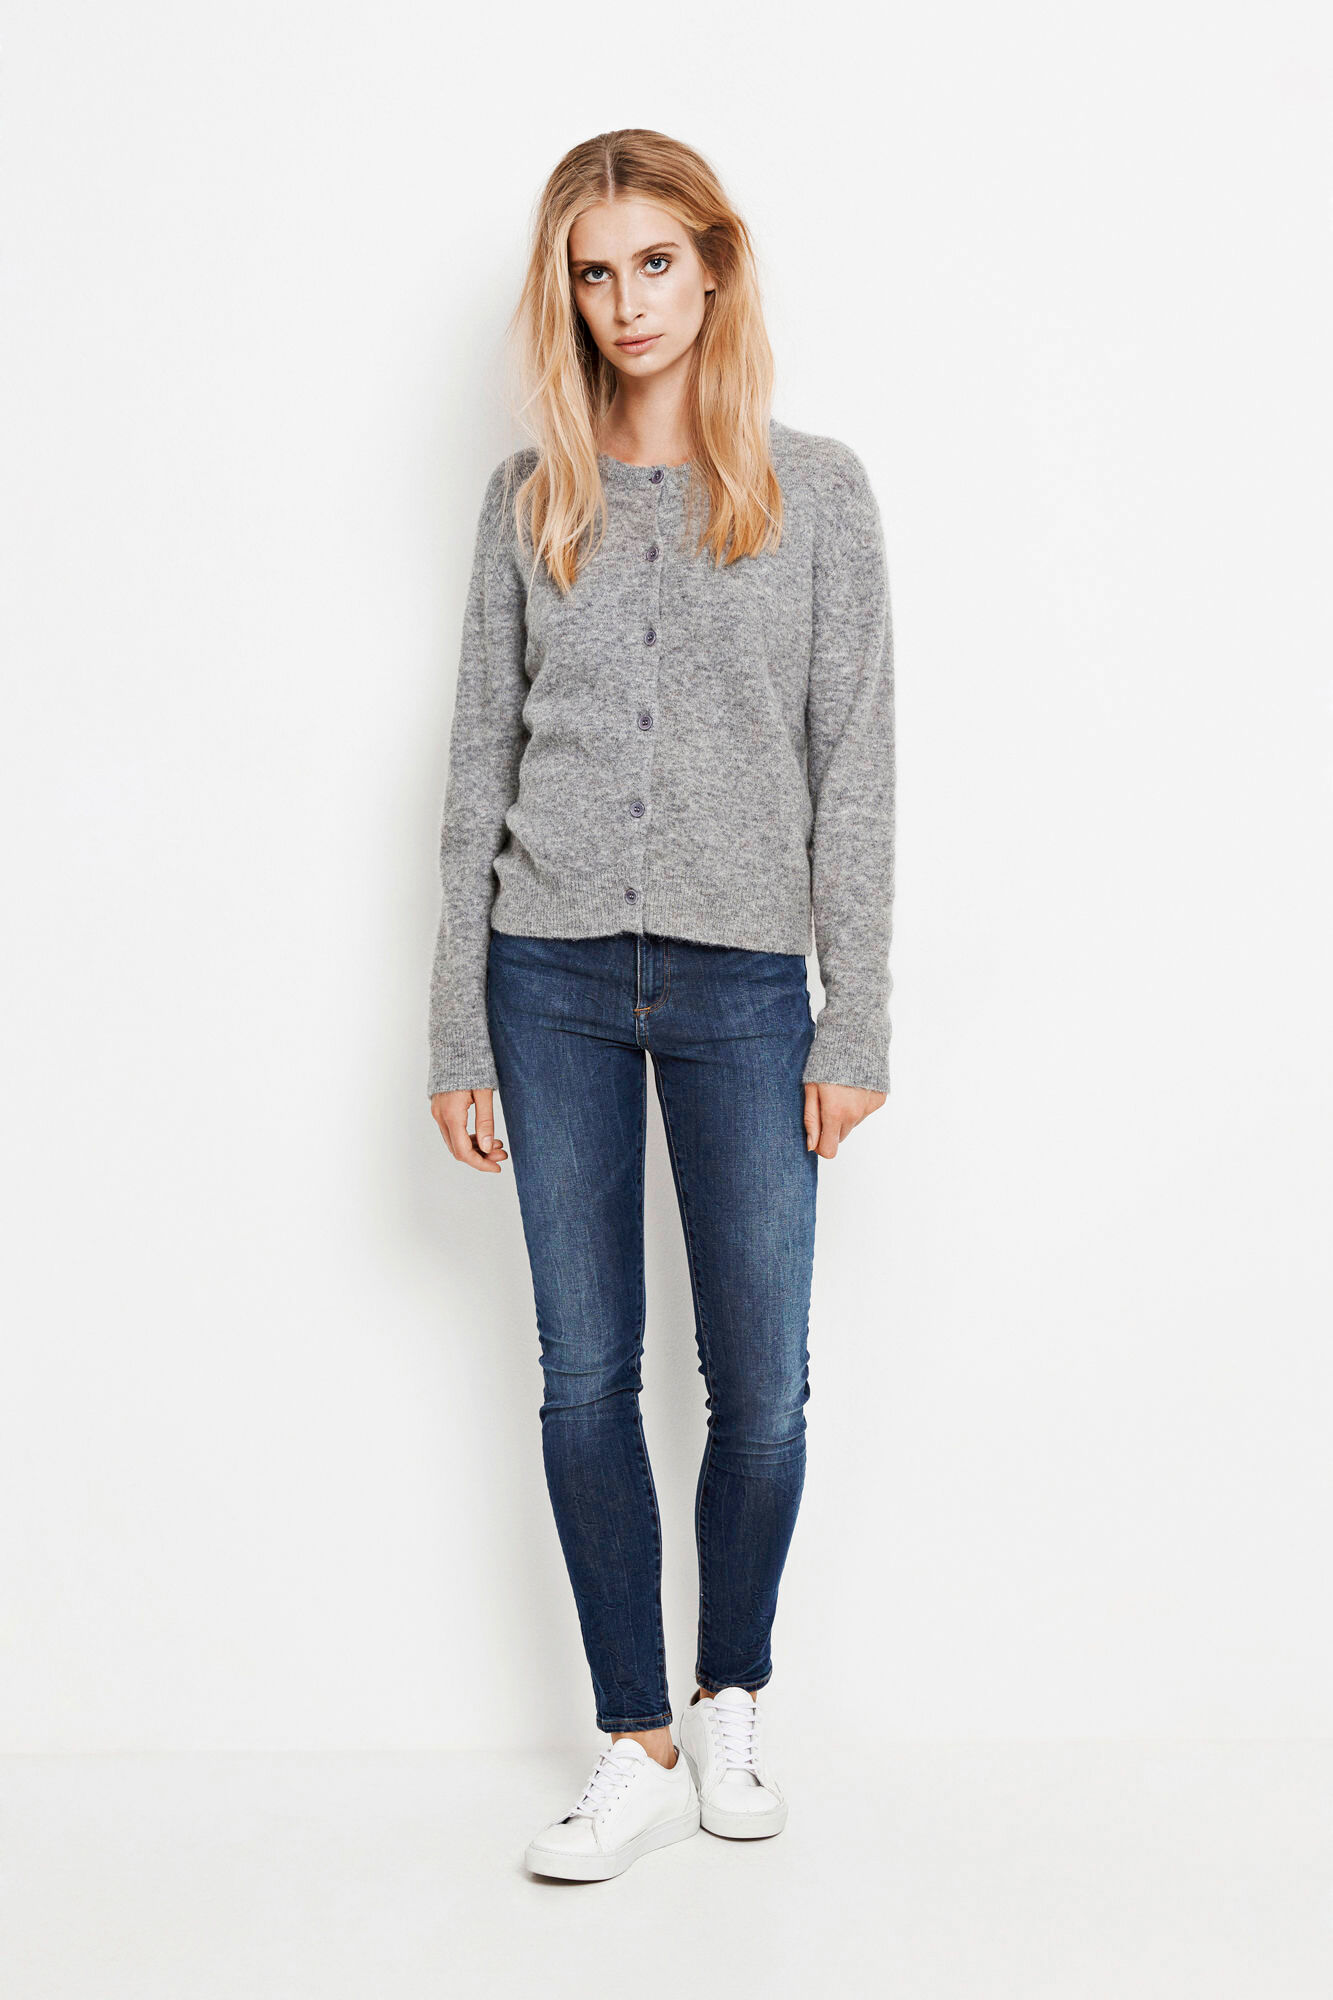 Nor short cardigan 7355, GREY MEL.